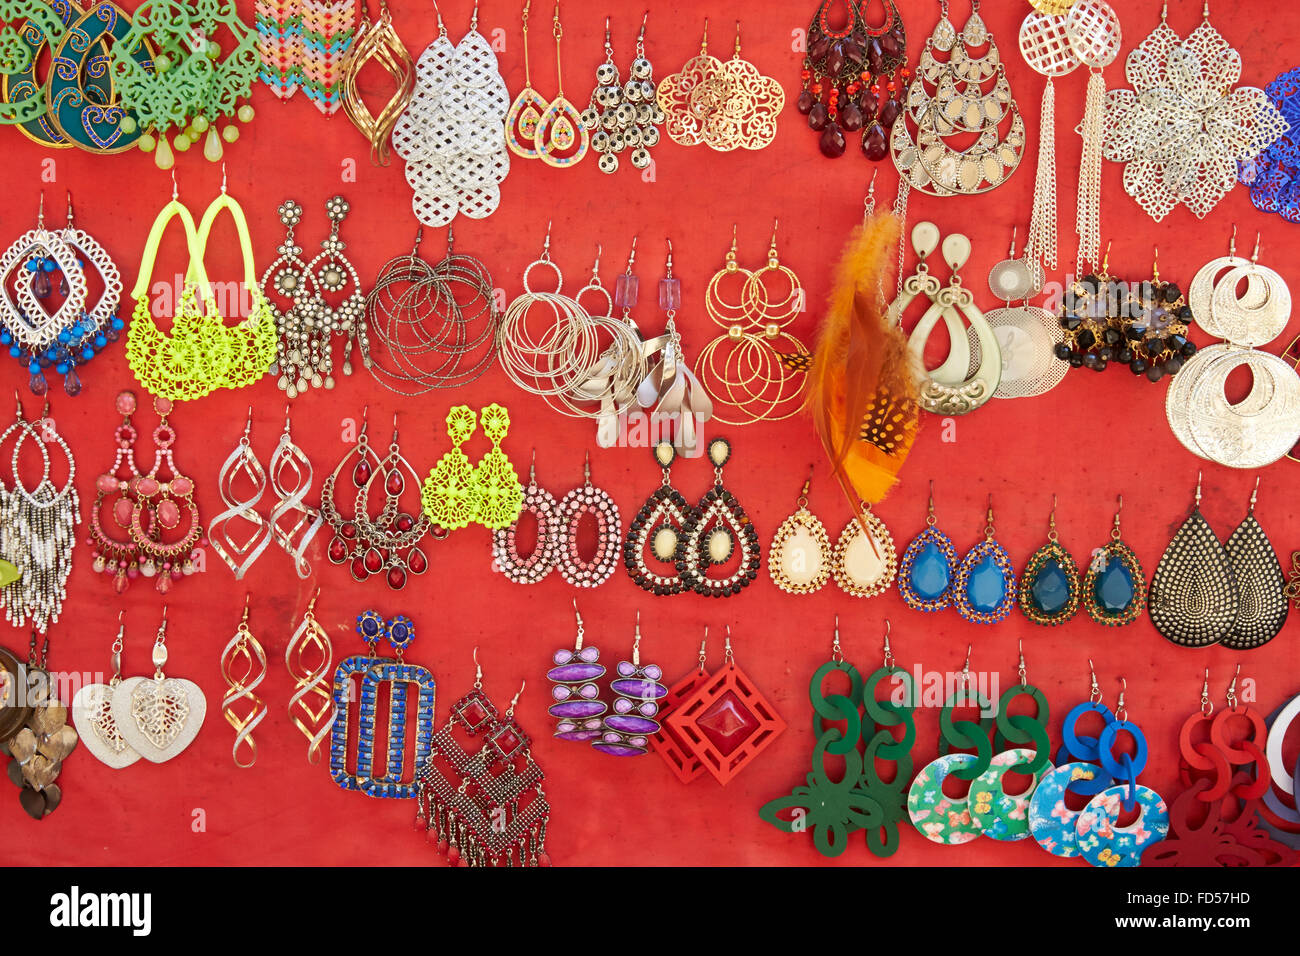 Cheap jewelry. - Stock Image